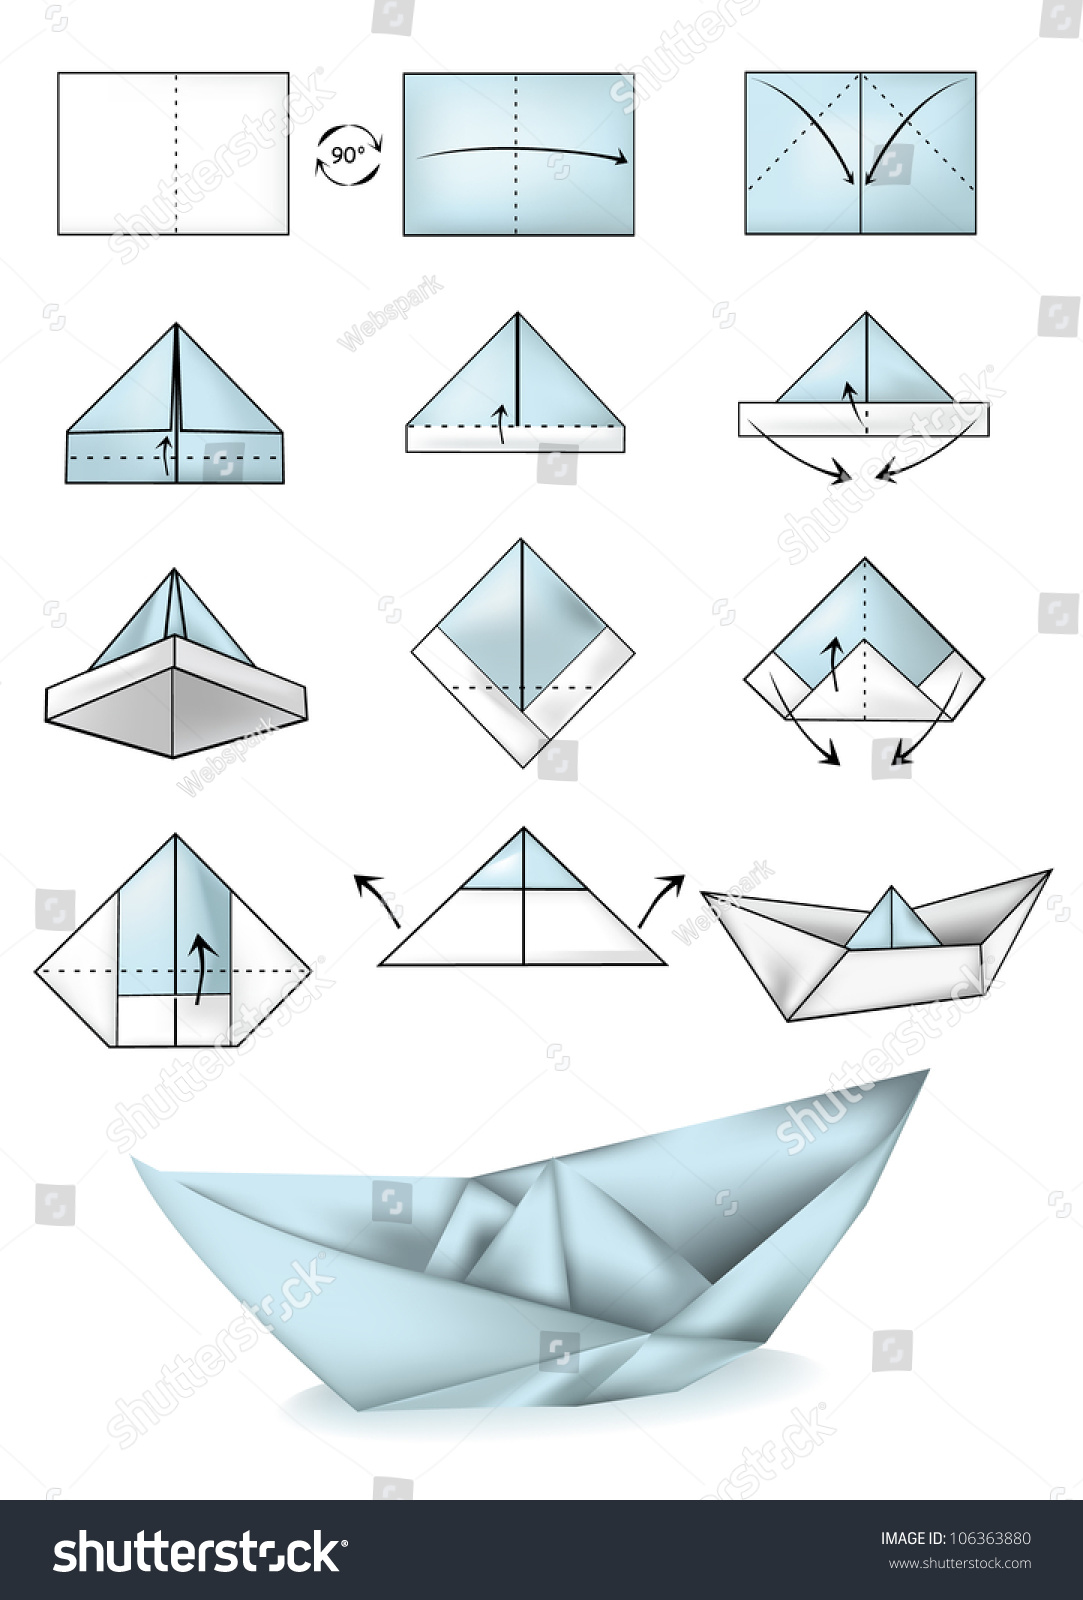 Paper boat instructions illustration tutorial stock vector paper boat instructions illustration tutorial jeuxipadfo Image collections